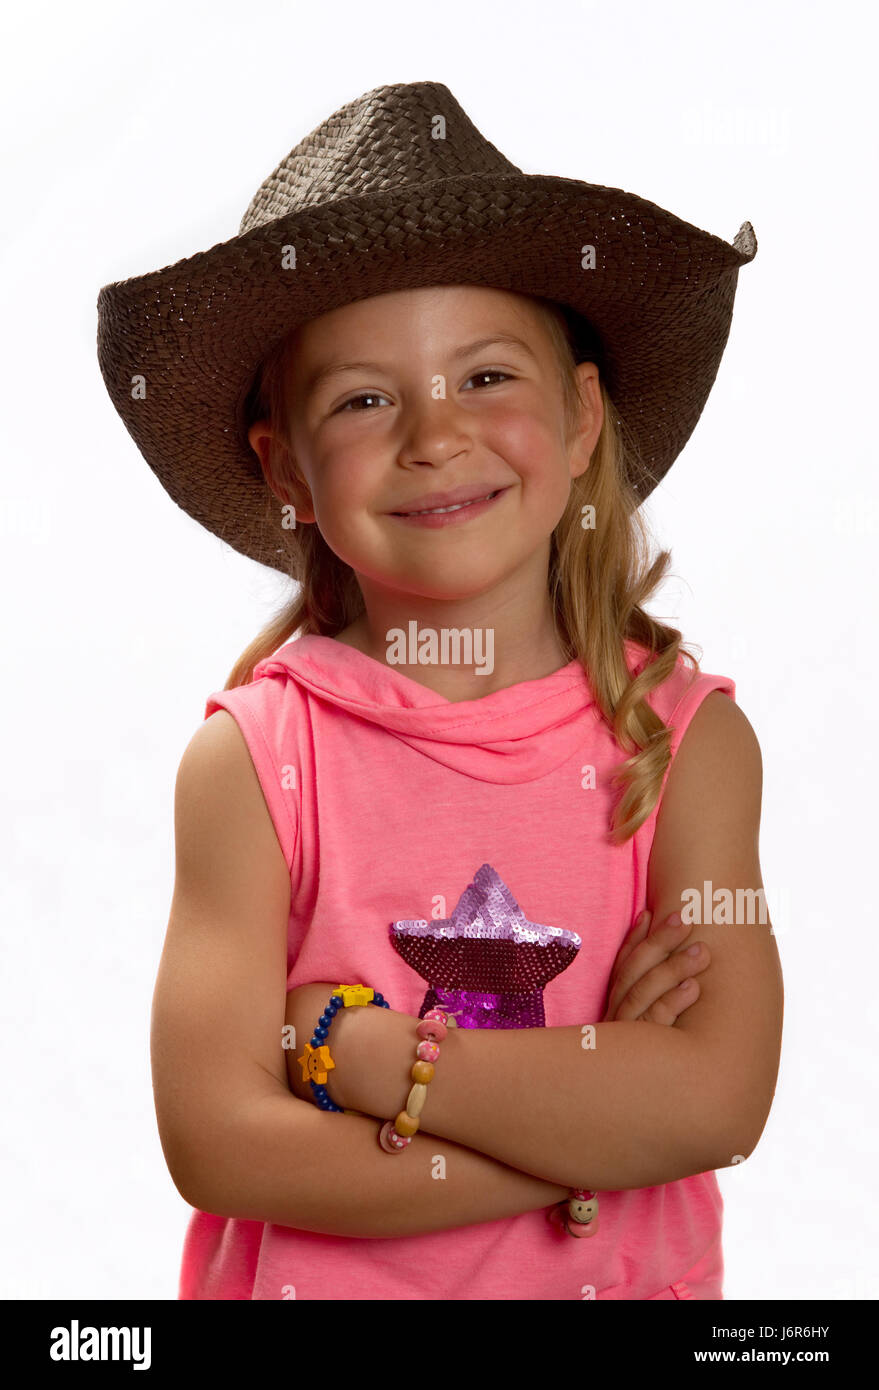 f78bbbf0acf98 fashion hat small tiny little short cowboy child girl girls straw laugh  laughs